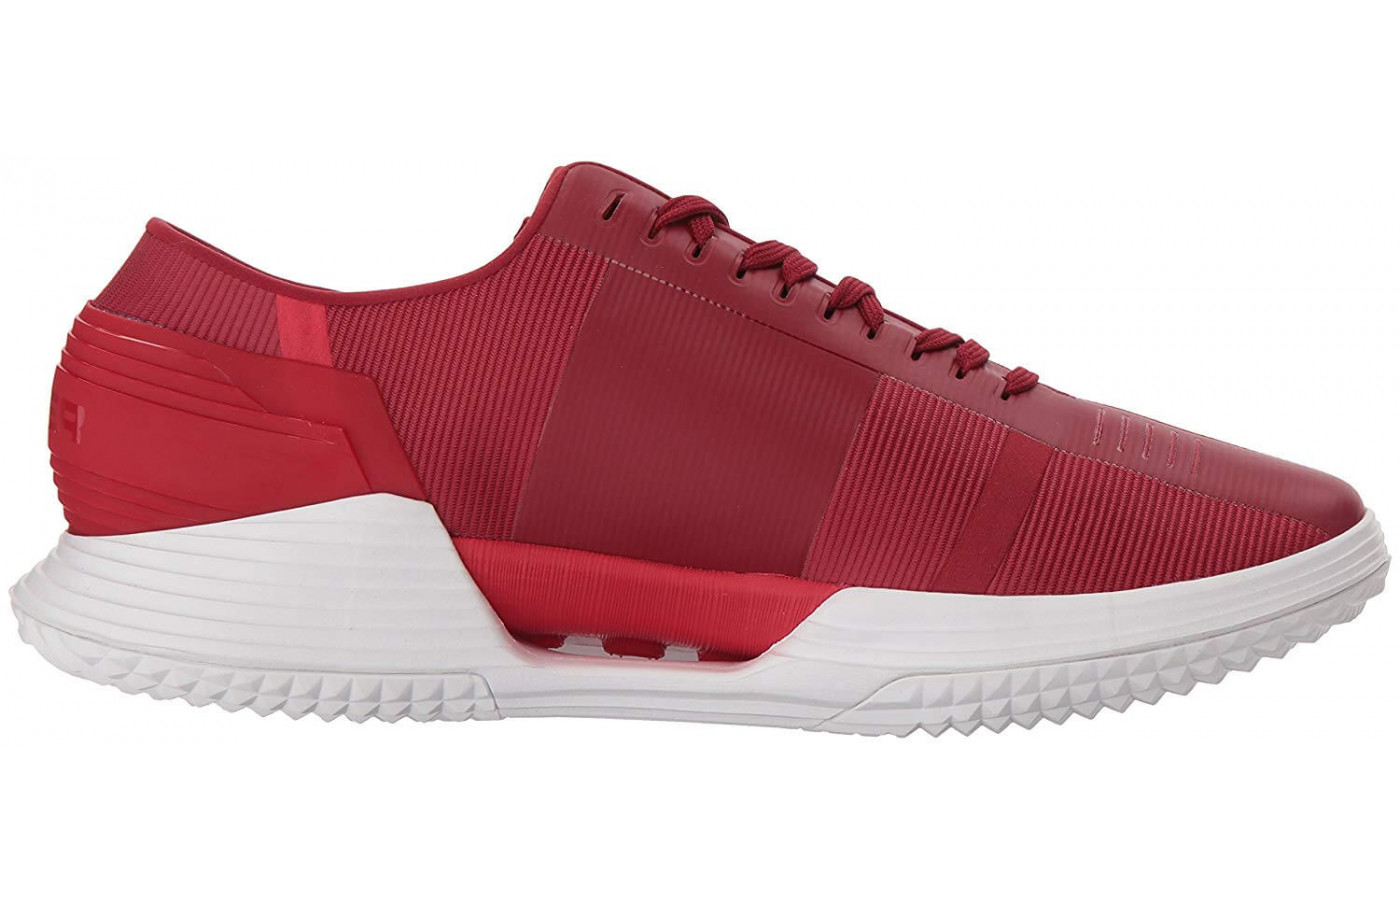 Under Armour Speedform Amp 2.0 Side View